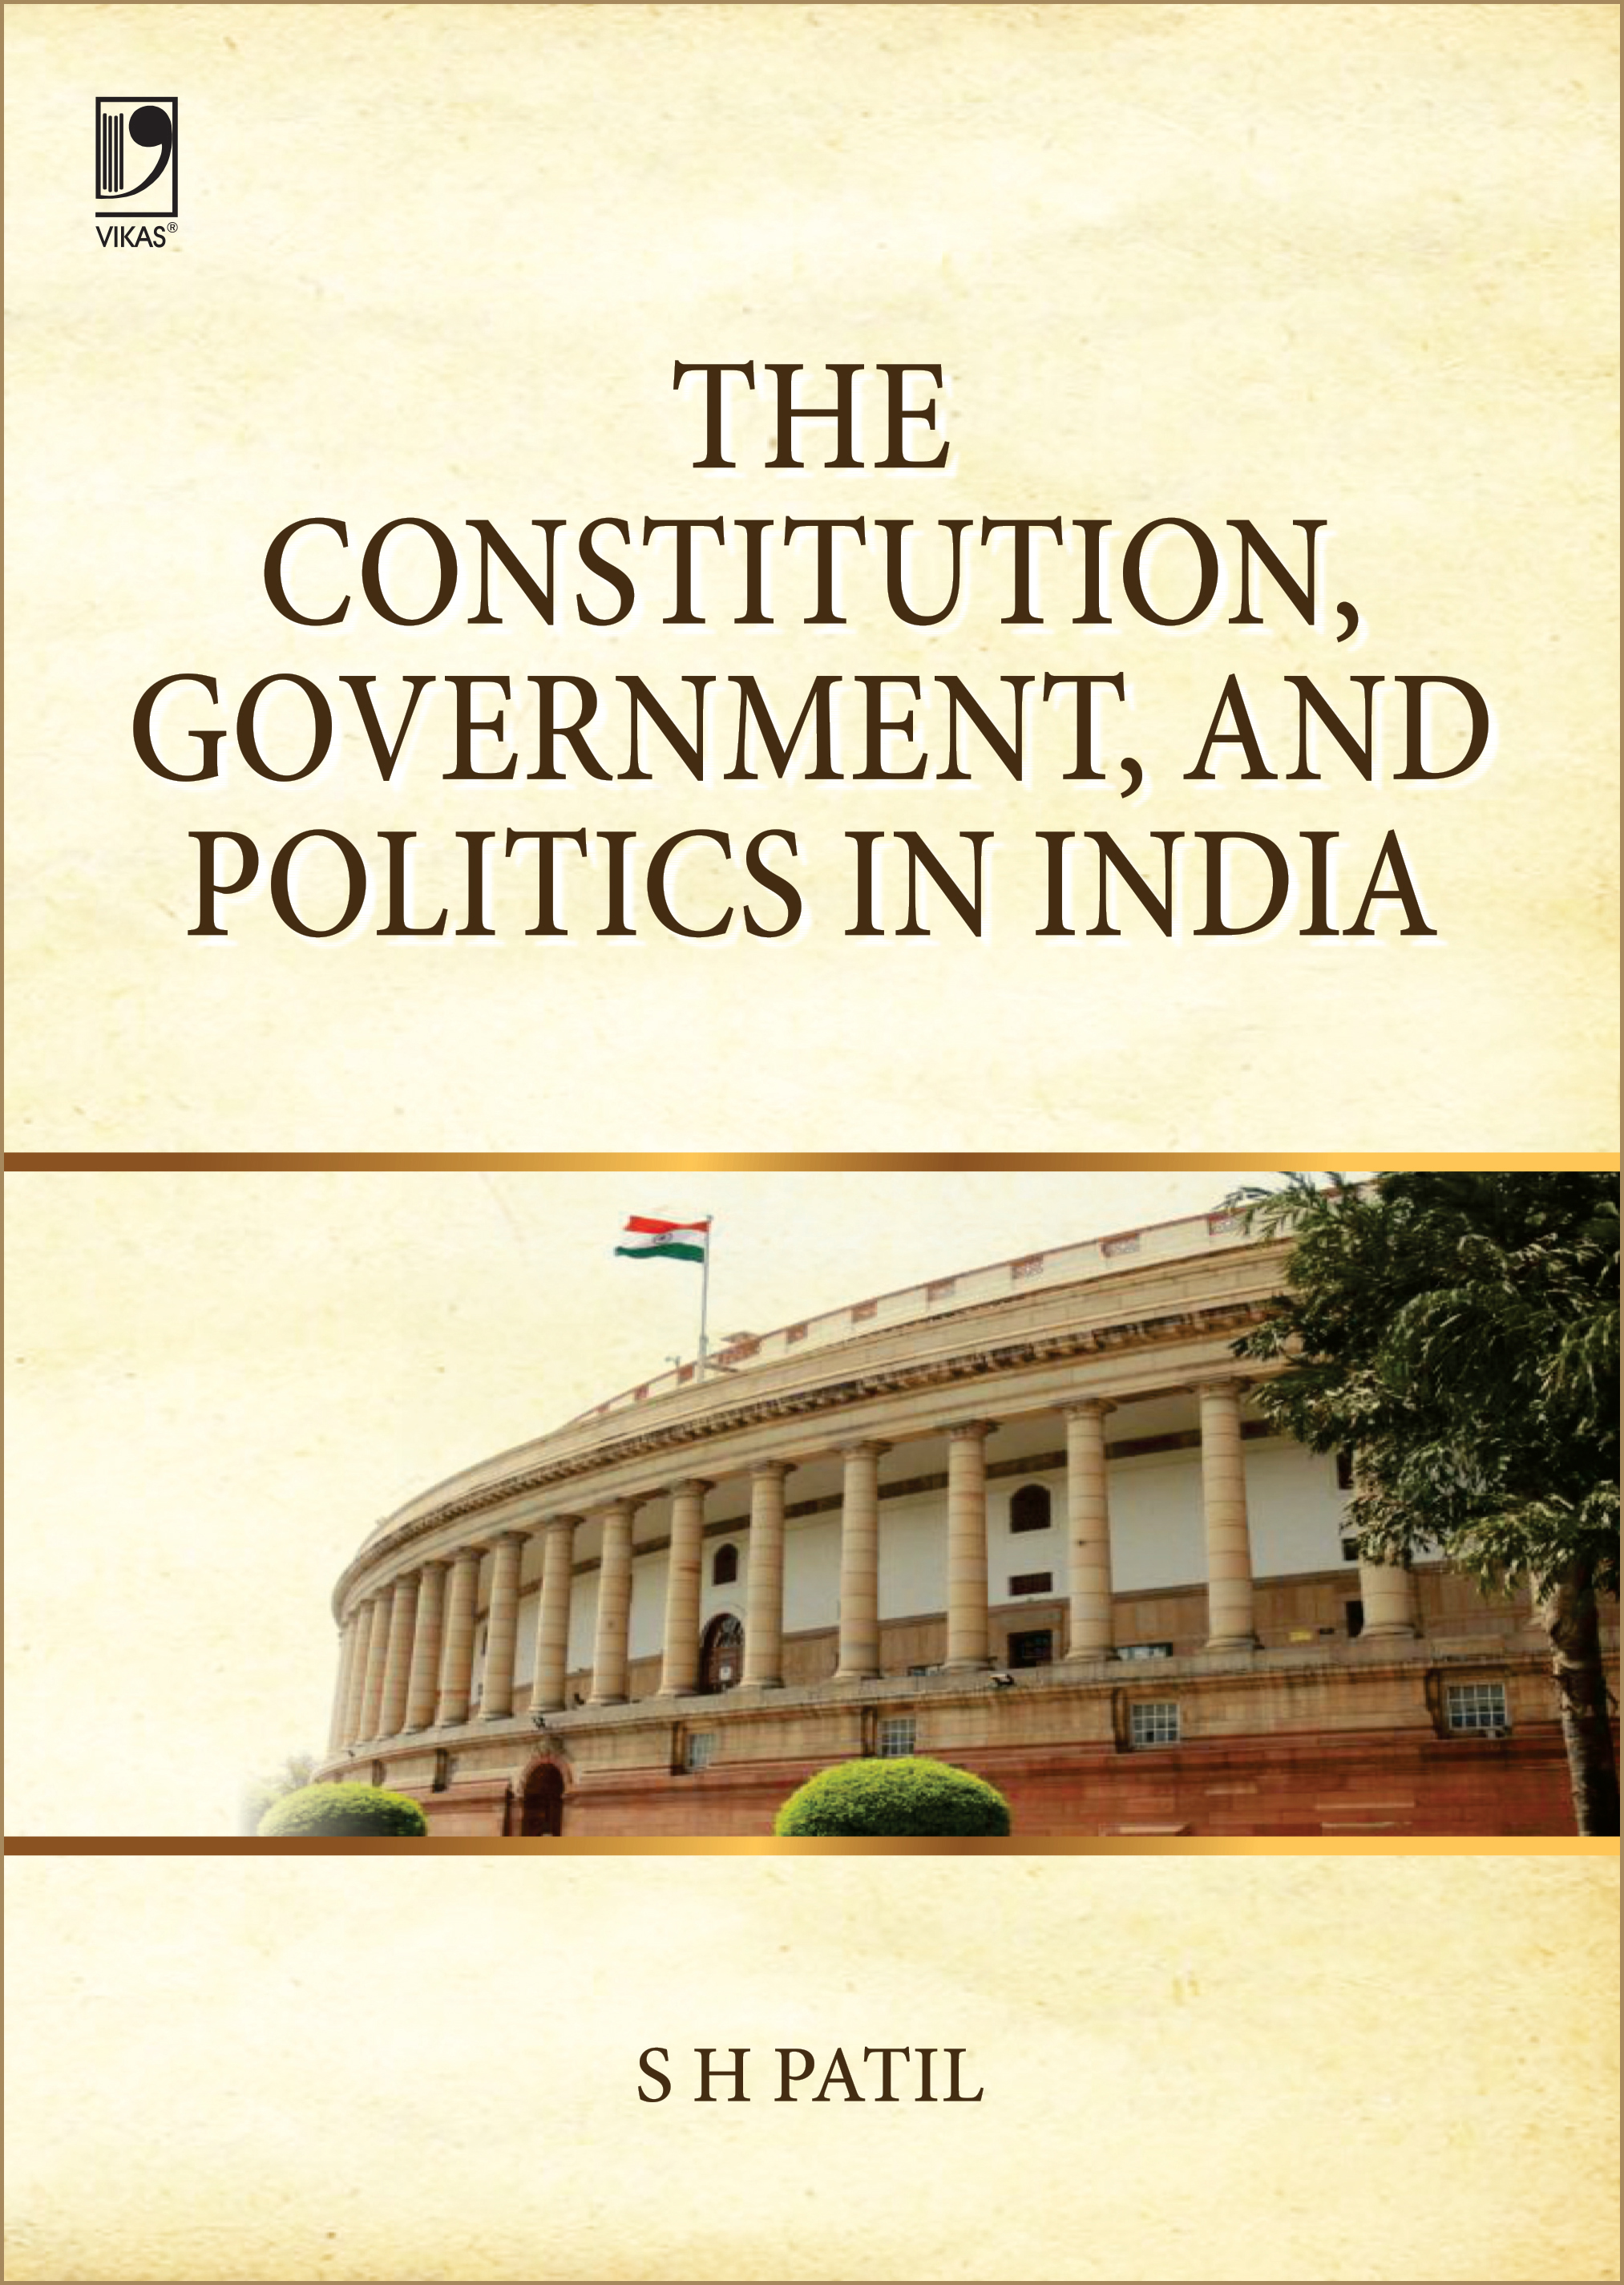 THE CONSTITUTION, GOVERNMENT AND POLITICS IN INDIA